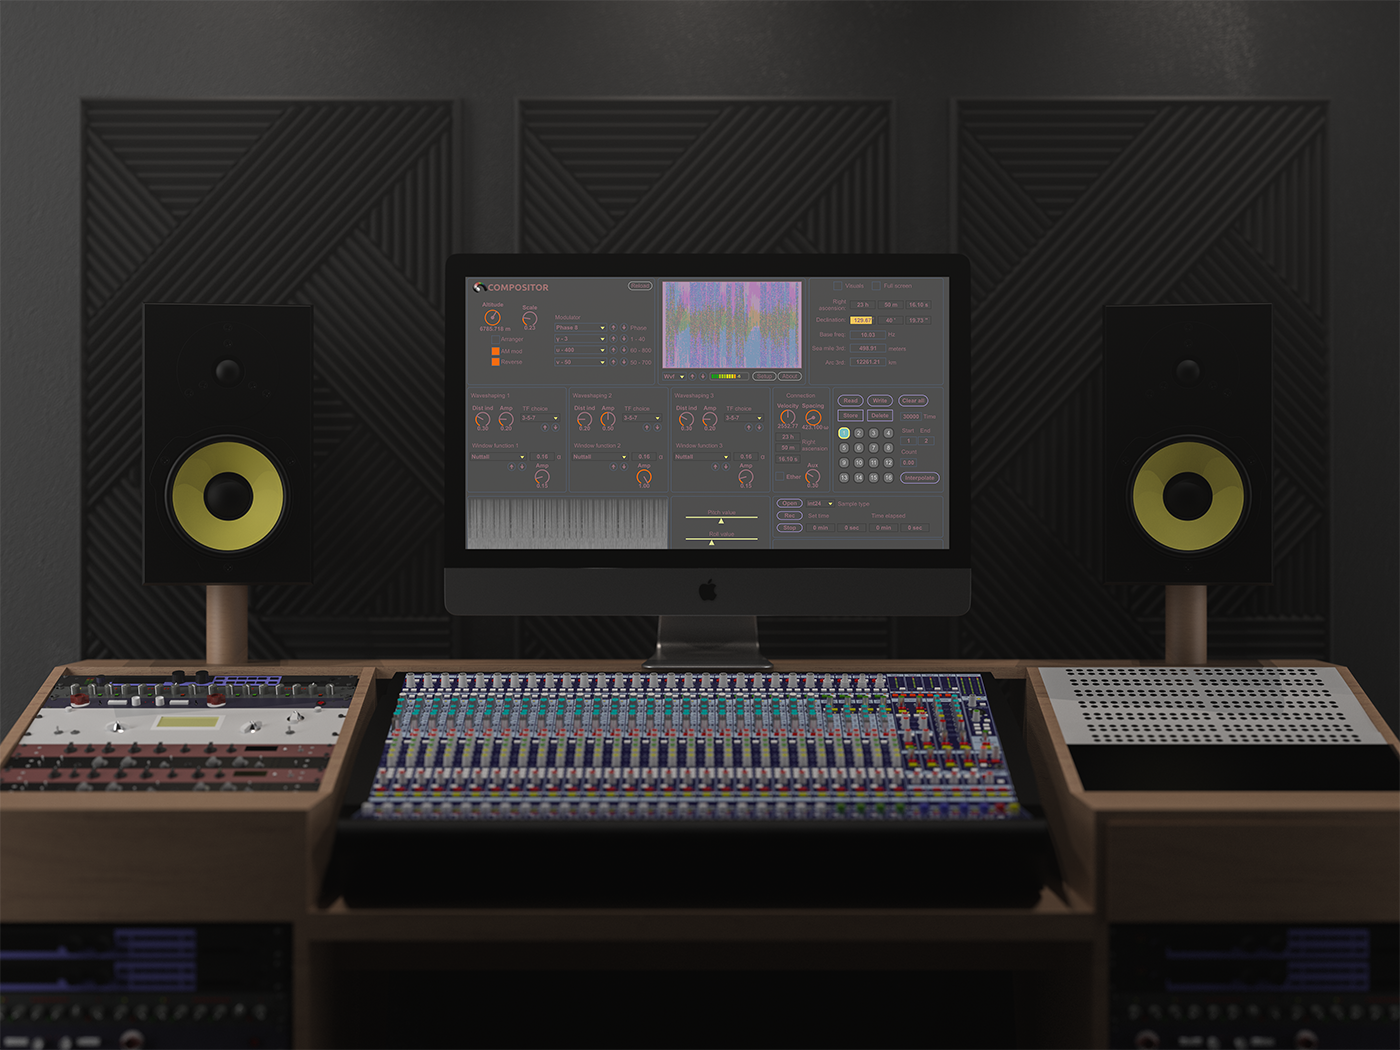 Compositor v9 in the studio